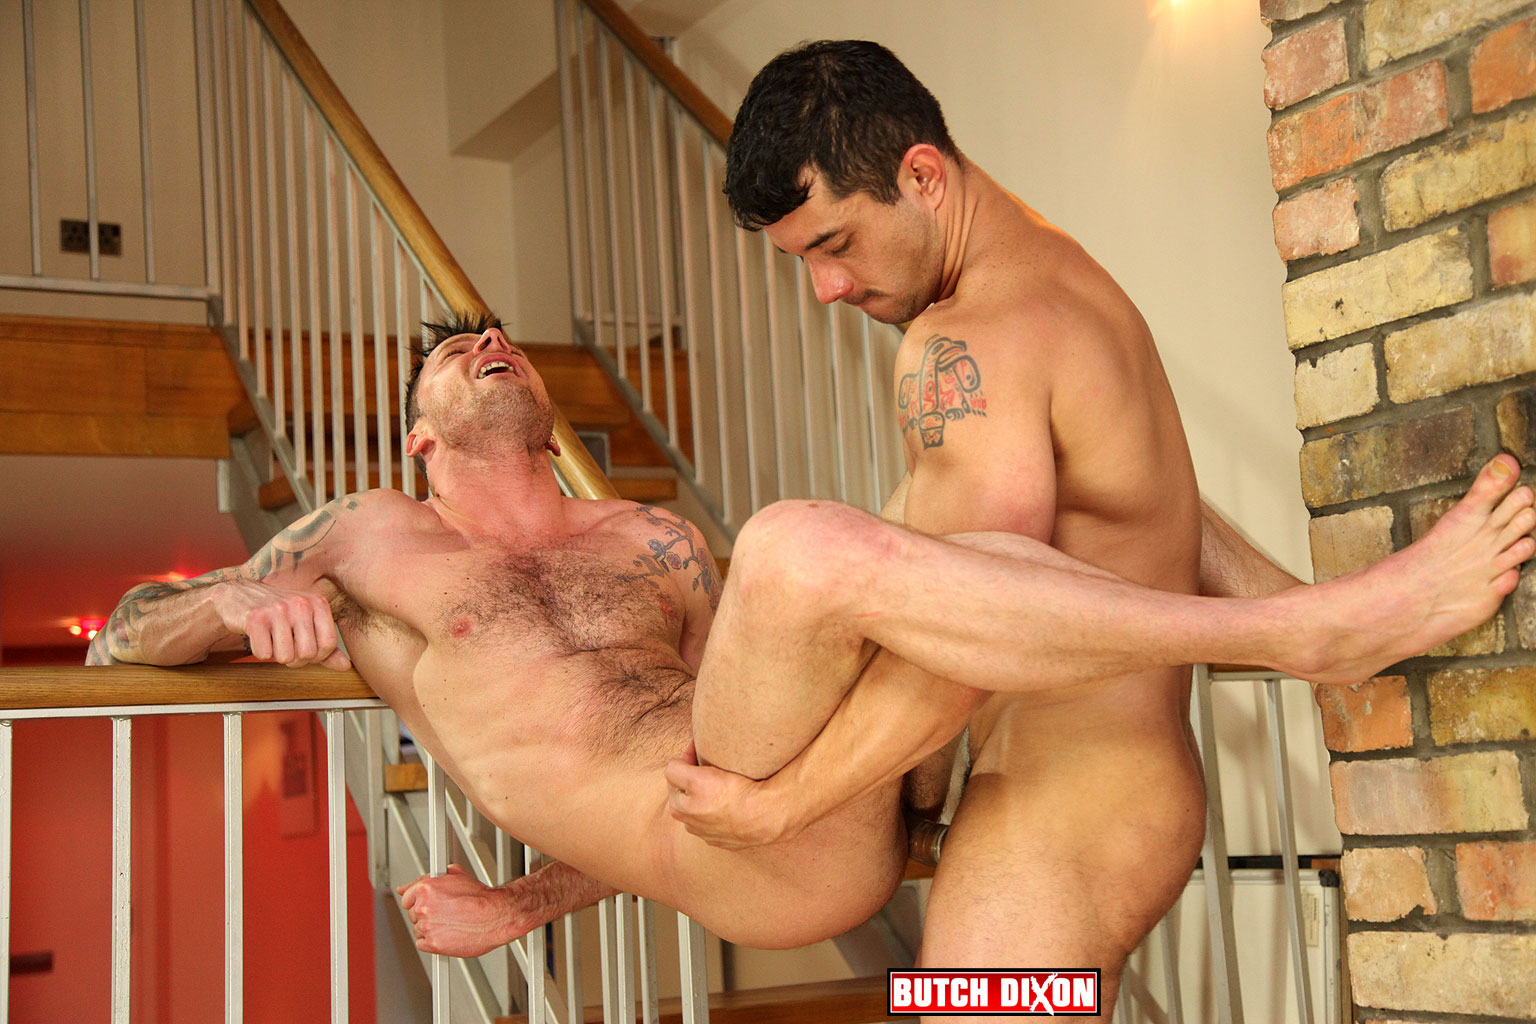 butch dixon Gio Cruz Fucks Eric North Big Big Uncut Cock 12 Thick Latin Cock Stud Rams His Tool In Amateur Ass